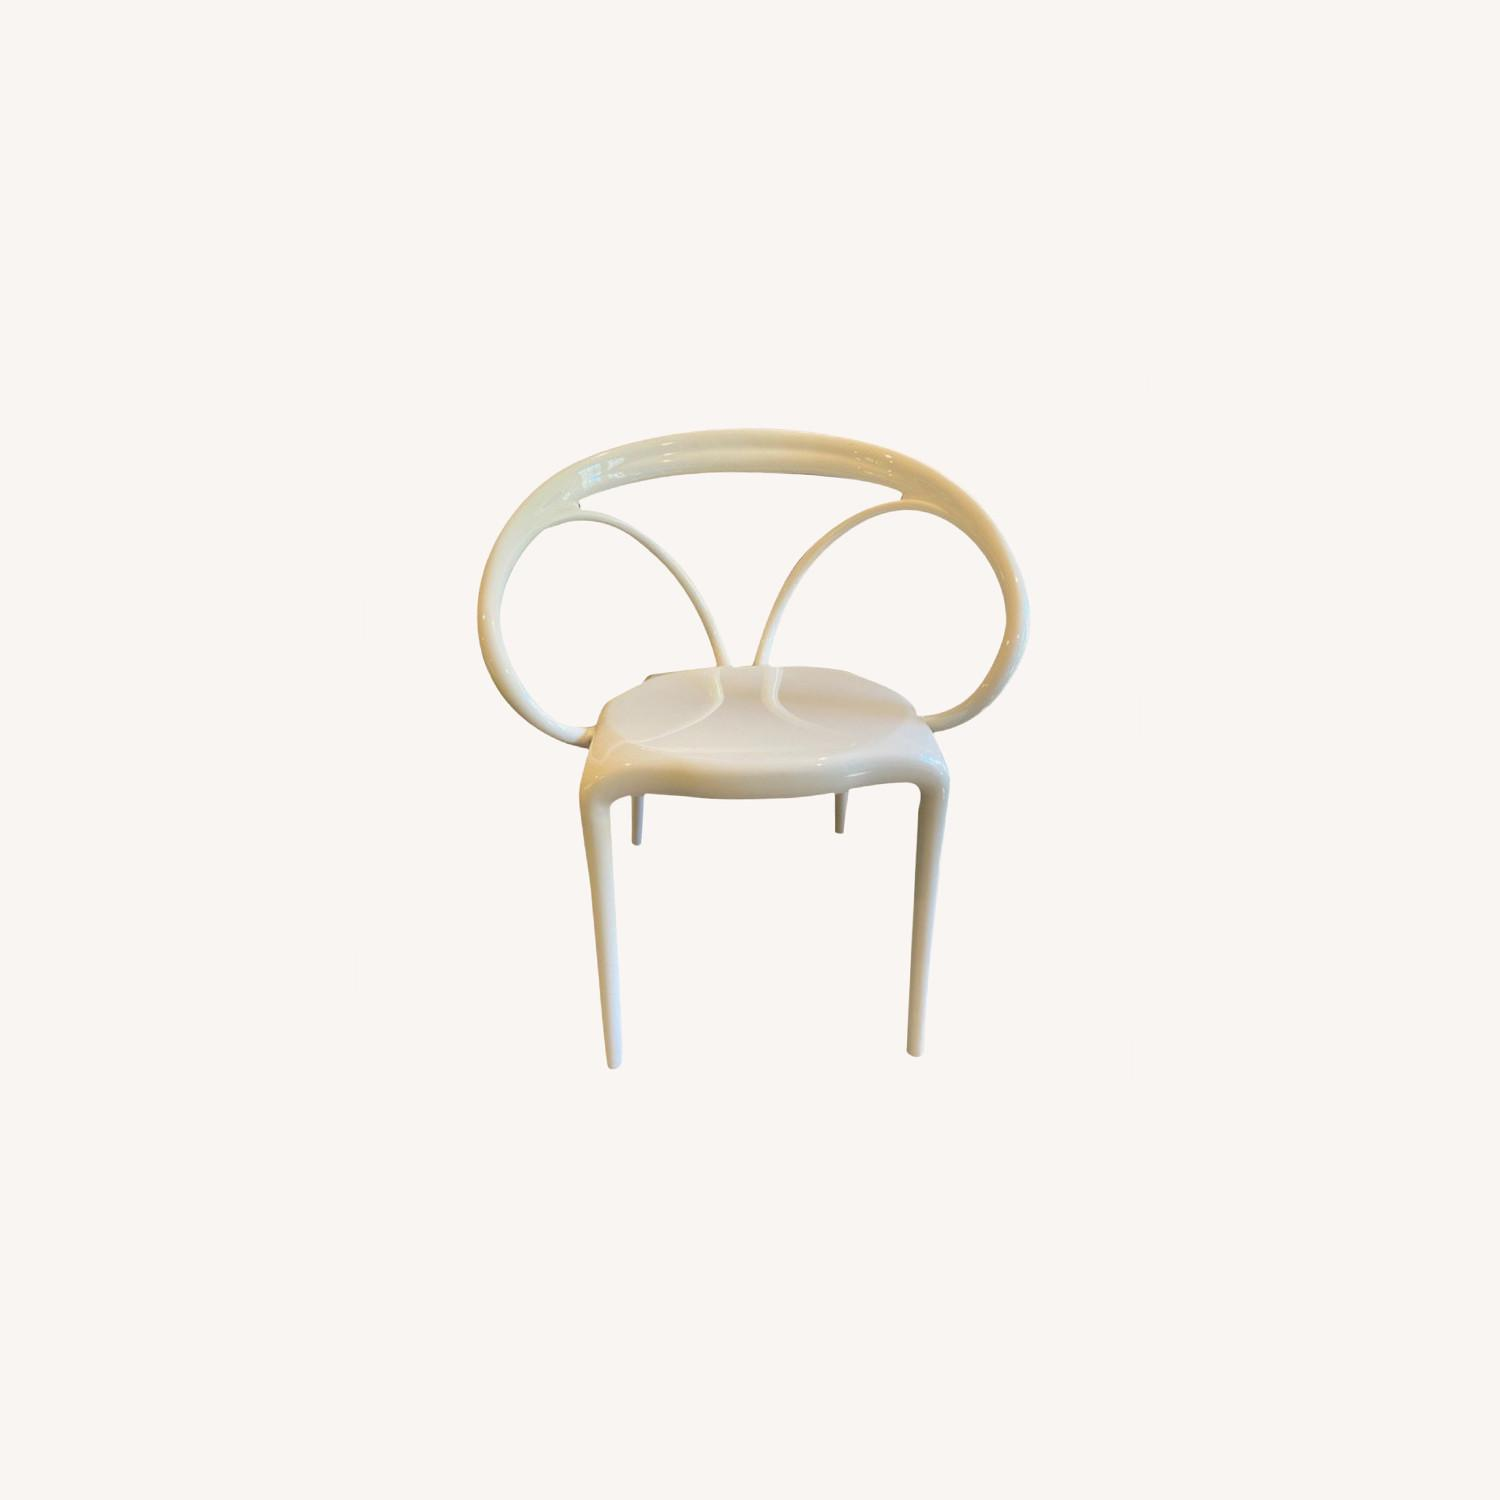 Wayfair Molded White Plastic Accent Chair - image-0